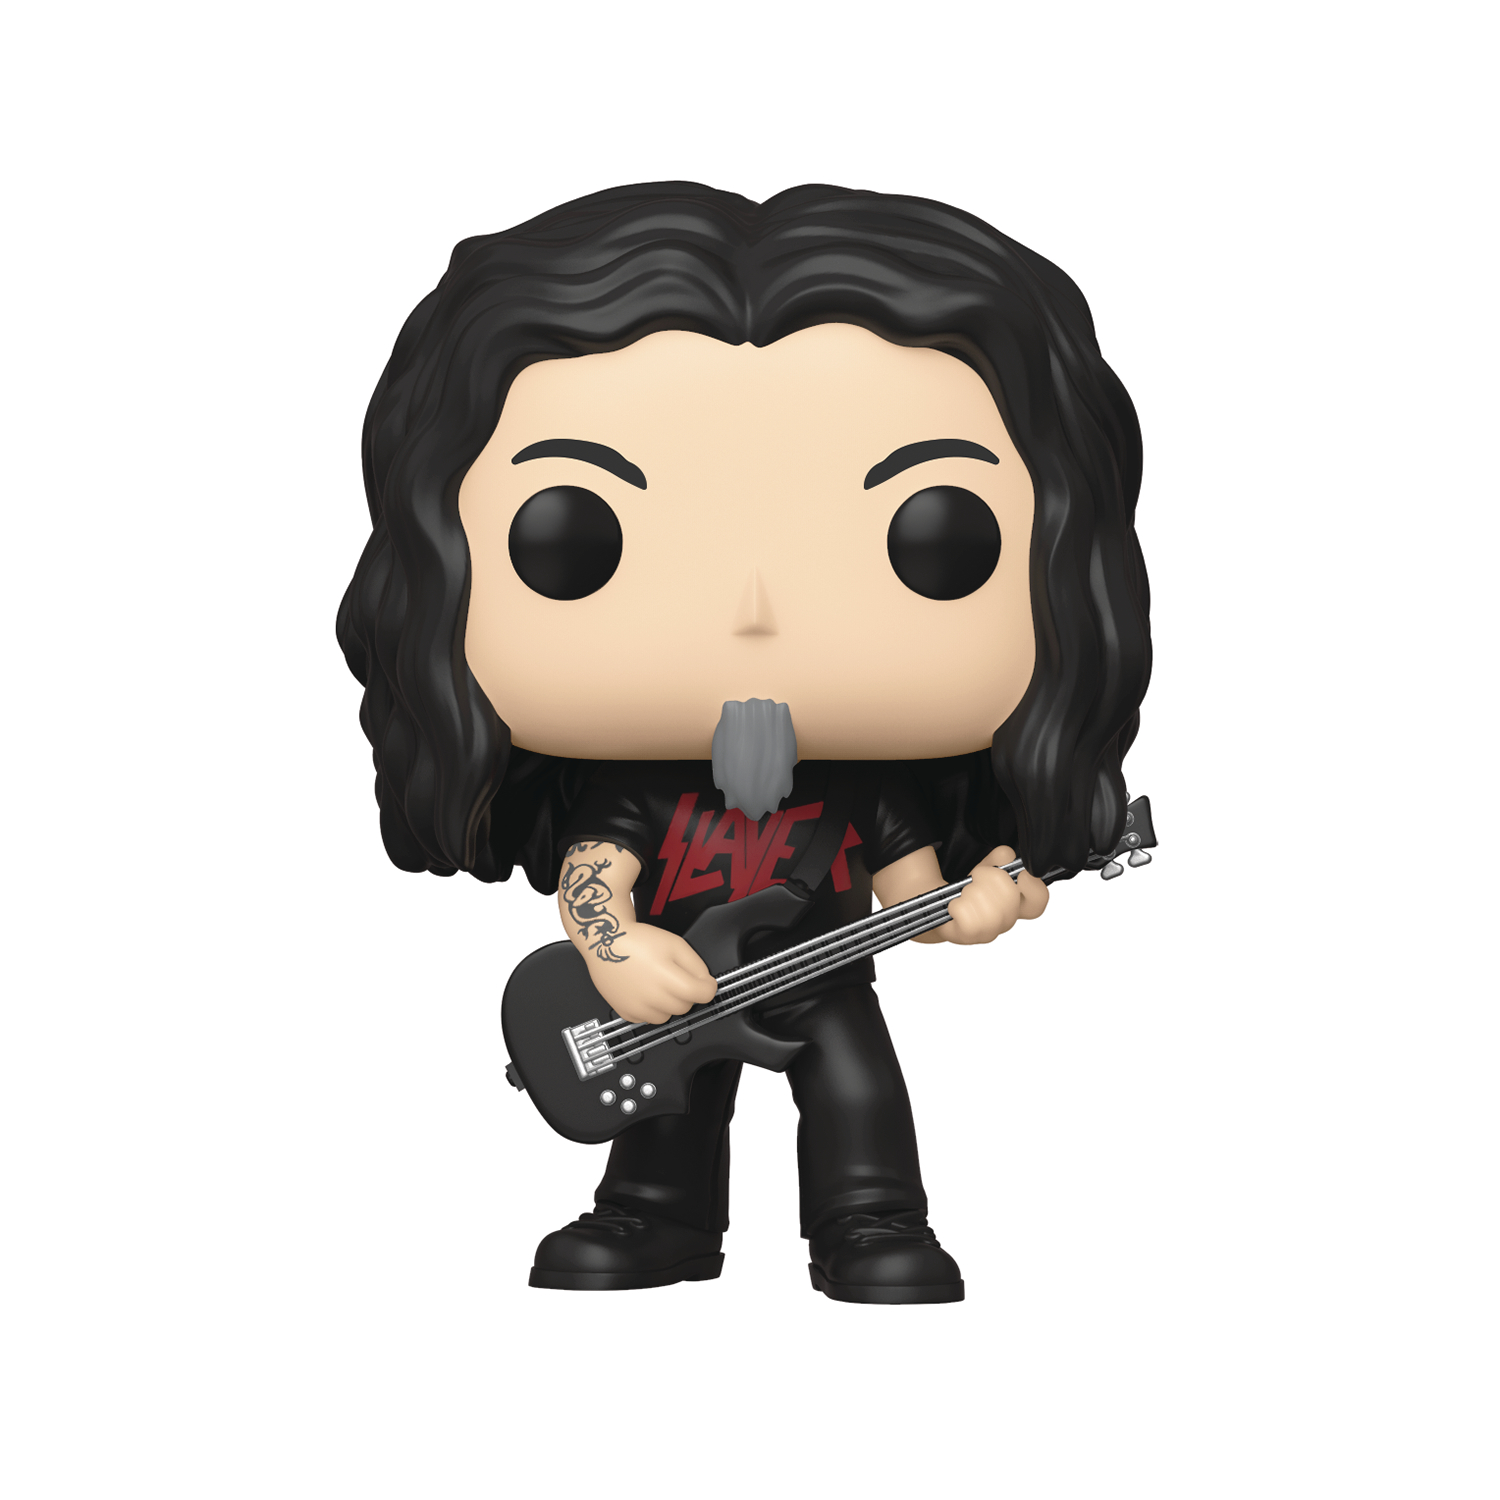 POP ROCKS SLAYER TOM ARAYA VIN FIG